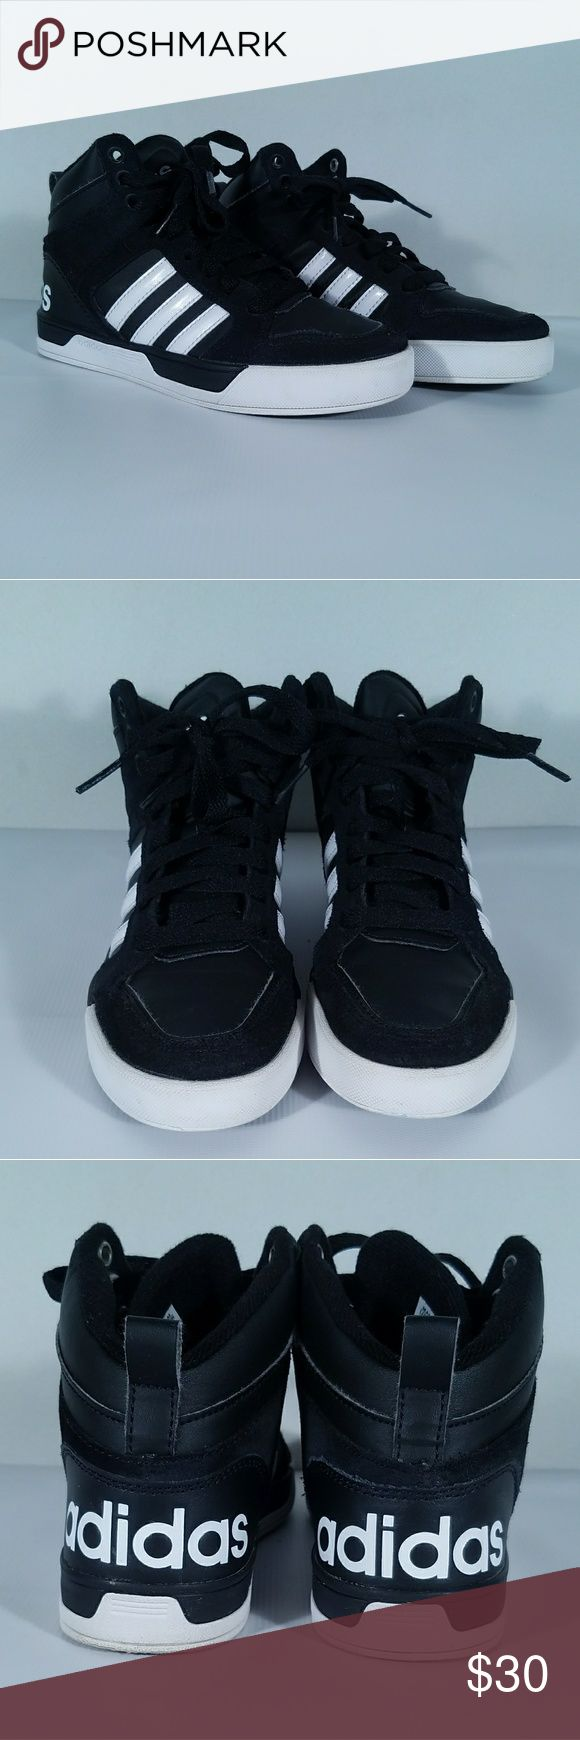 High Raleigh Top Baskets Neo Hommes Guide 5db1f6 Adidas fTwqB1UT